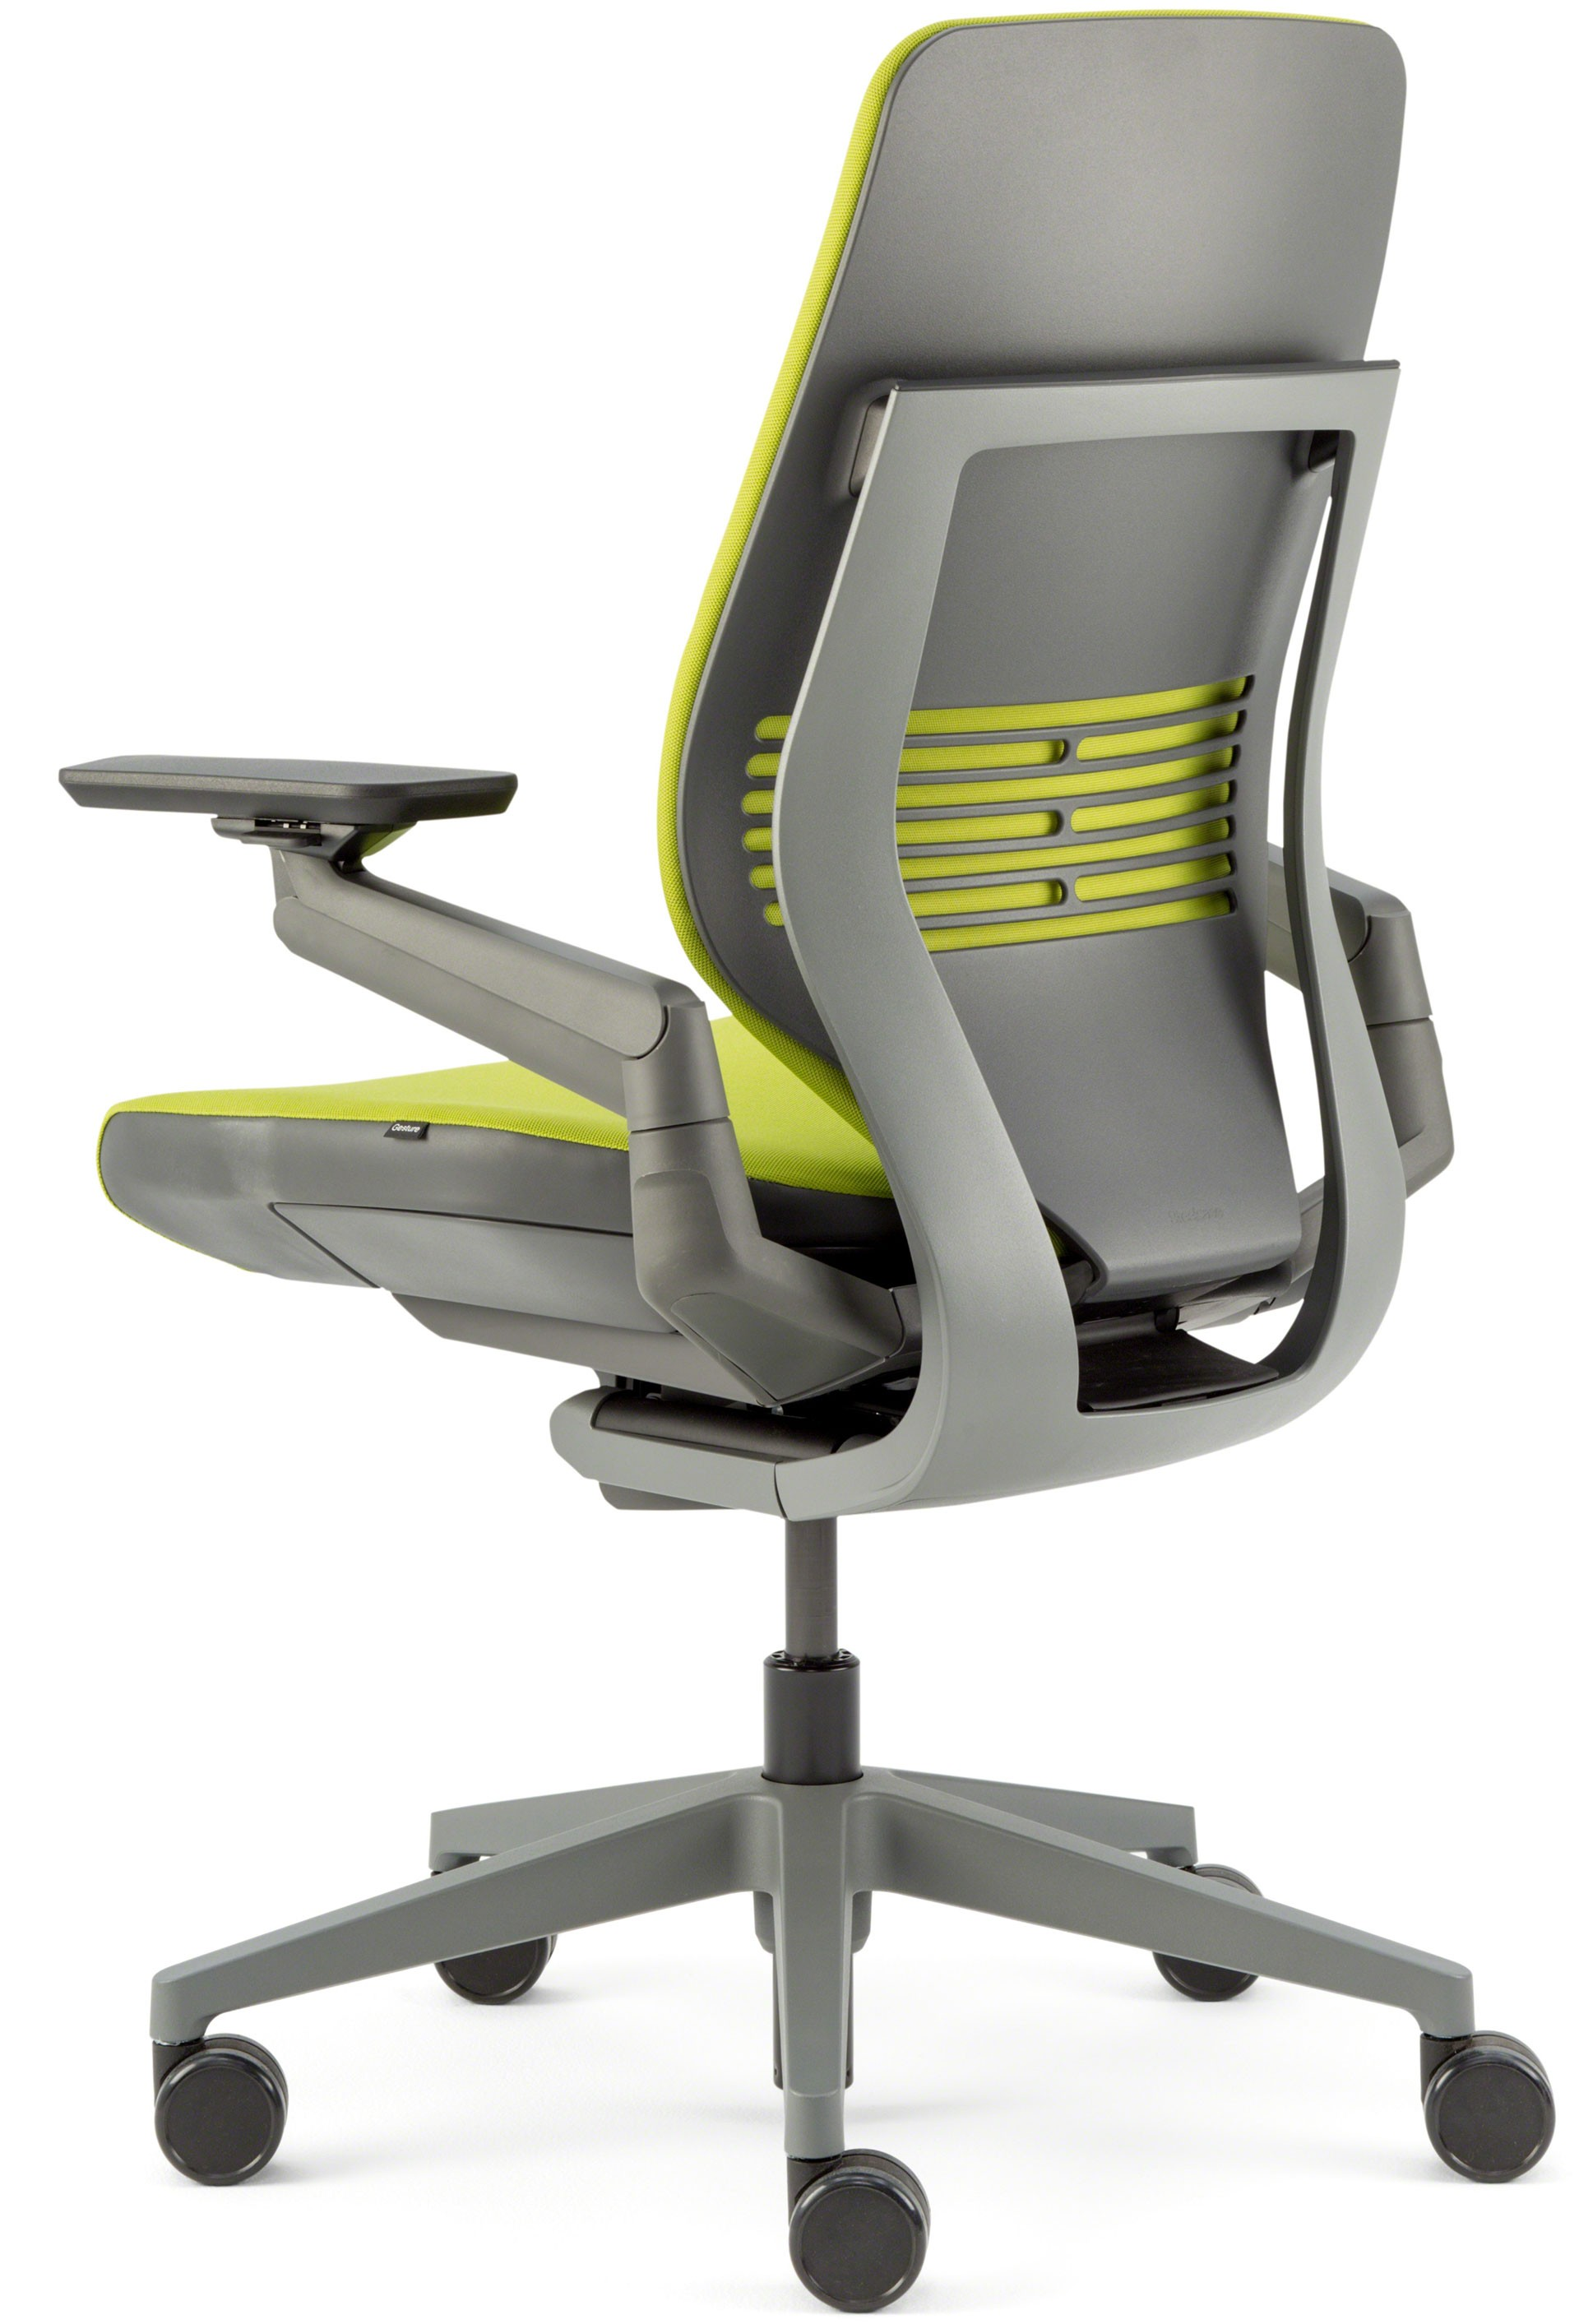 office chair supports 300 lbs victorian accent steelcase gesture